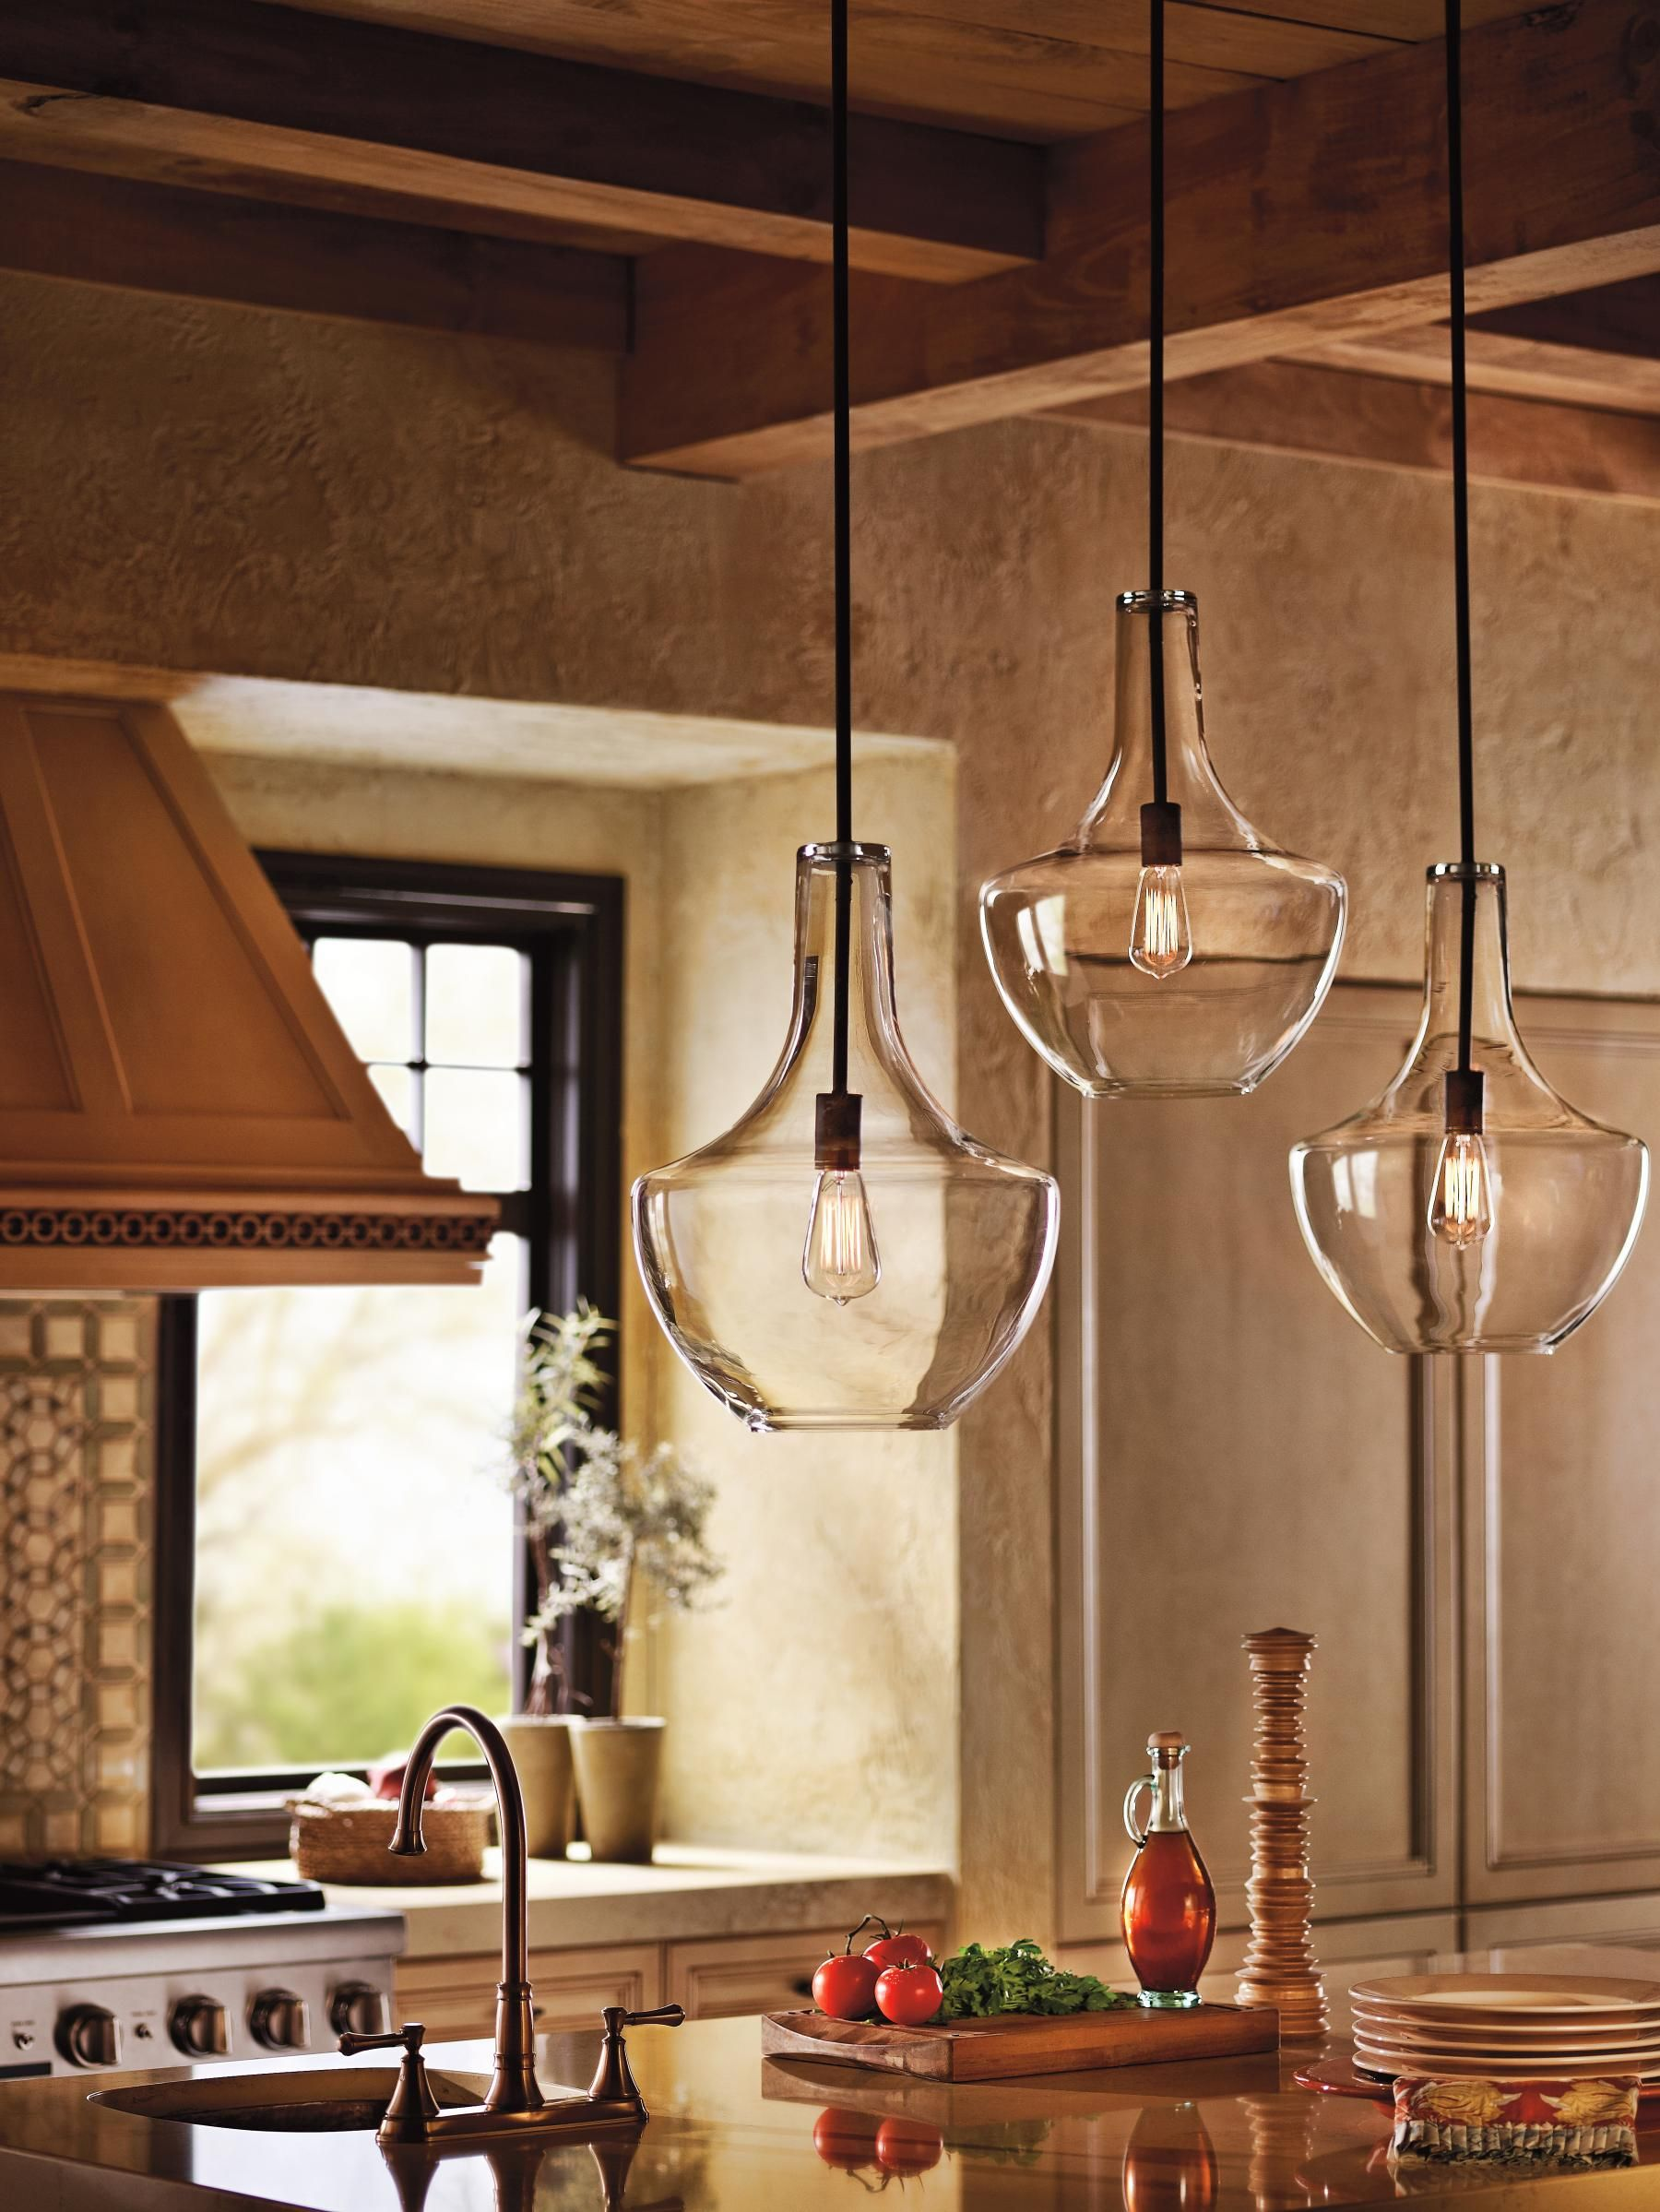 Redecorating Kitchen This Transitional Style Pendant Is A Perfect Option To Light Up